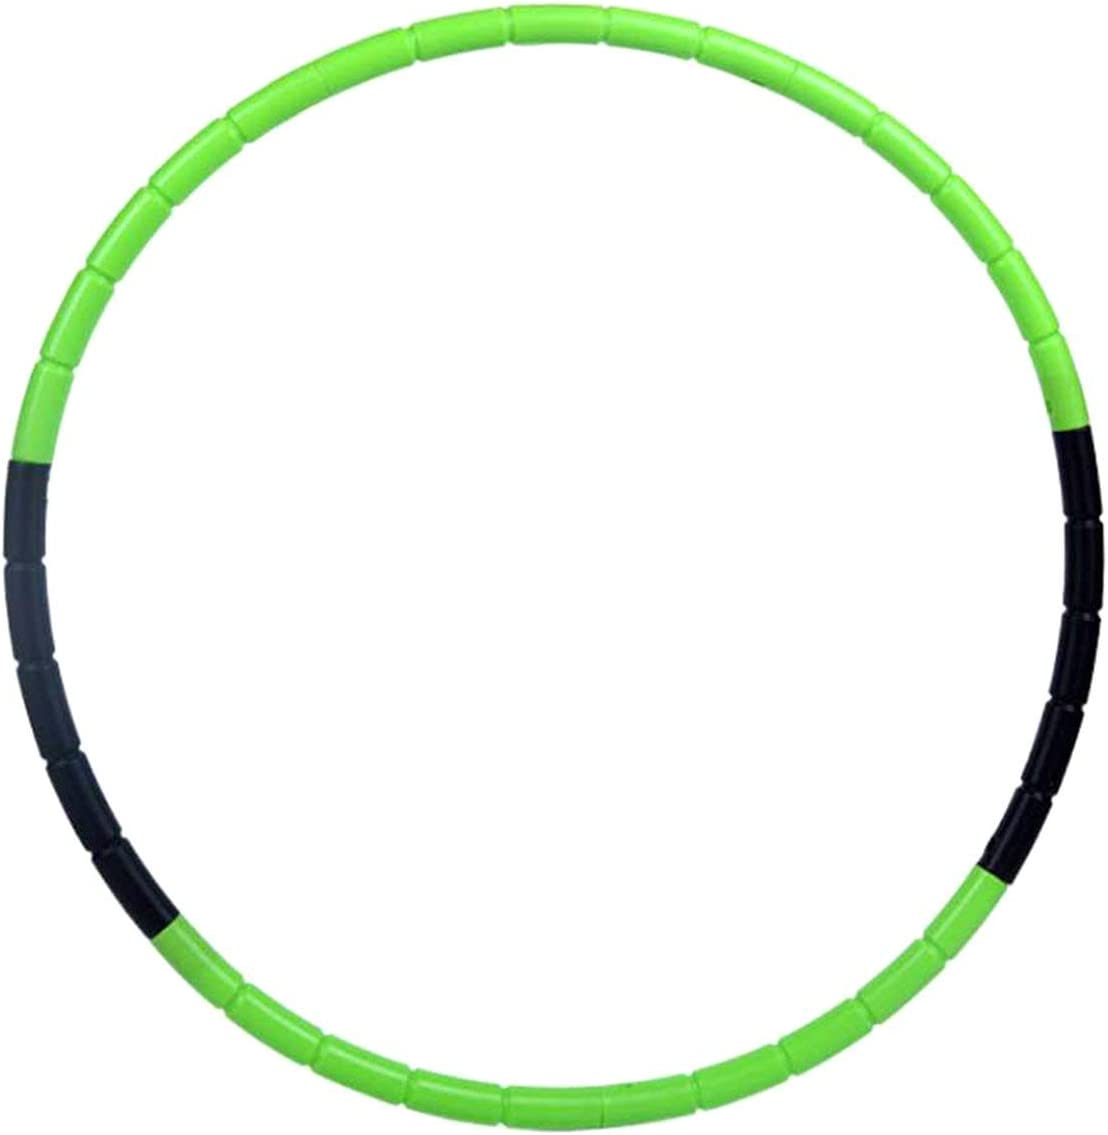 Removable Assembly Weight Loss ACU Hoop Sports Hoop Weighted Hoop Weighted Fitness Exercise Hula Hoop